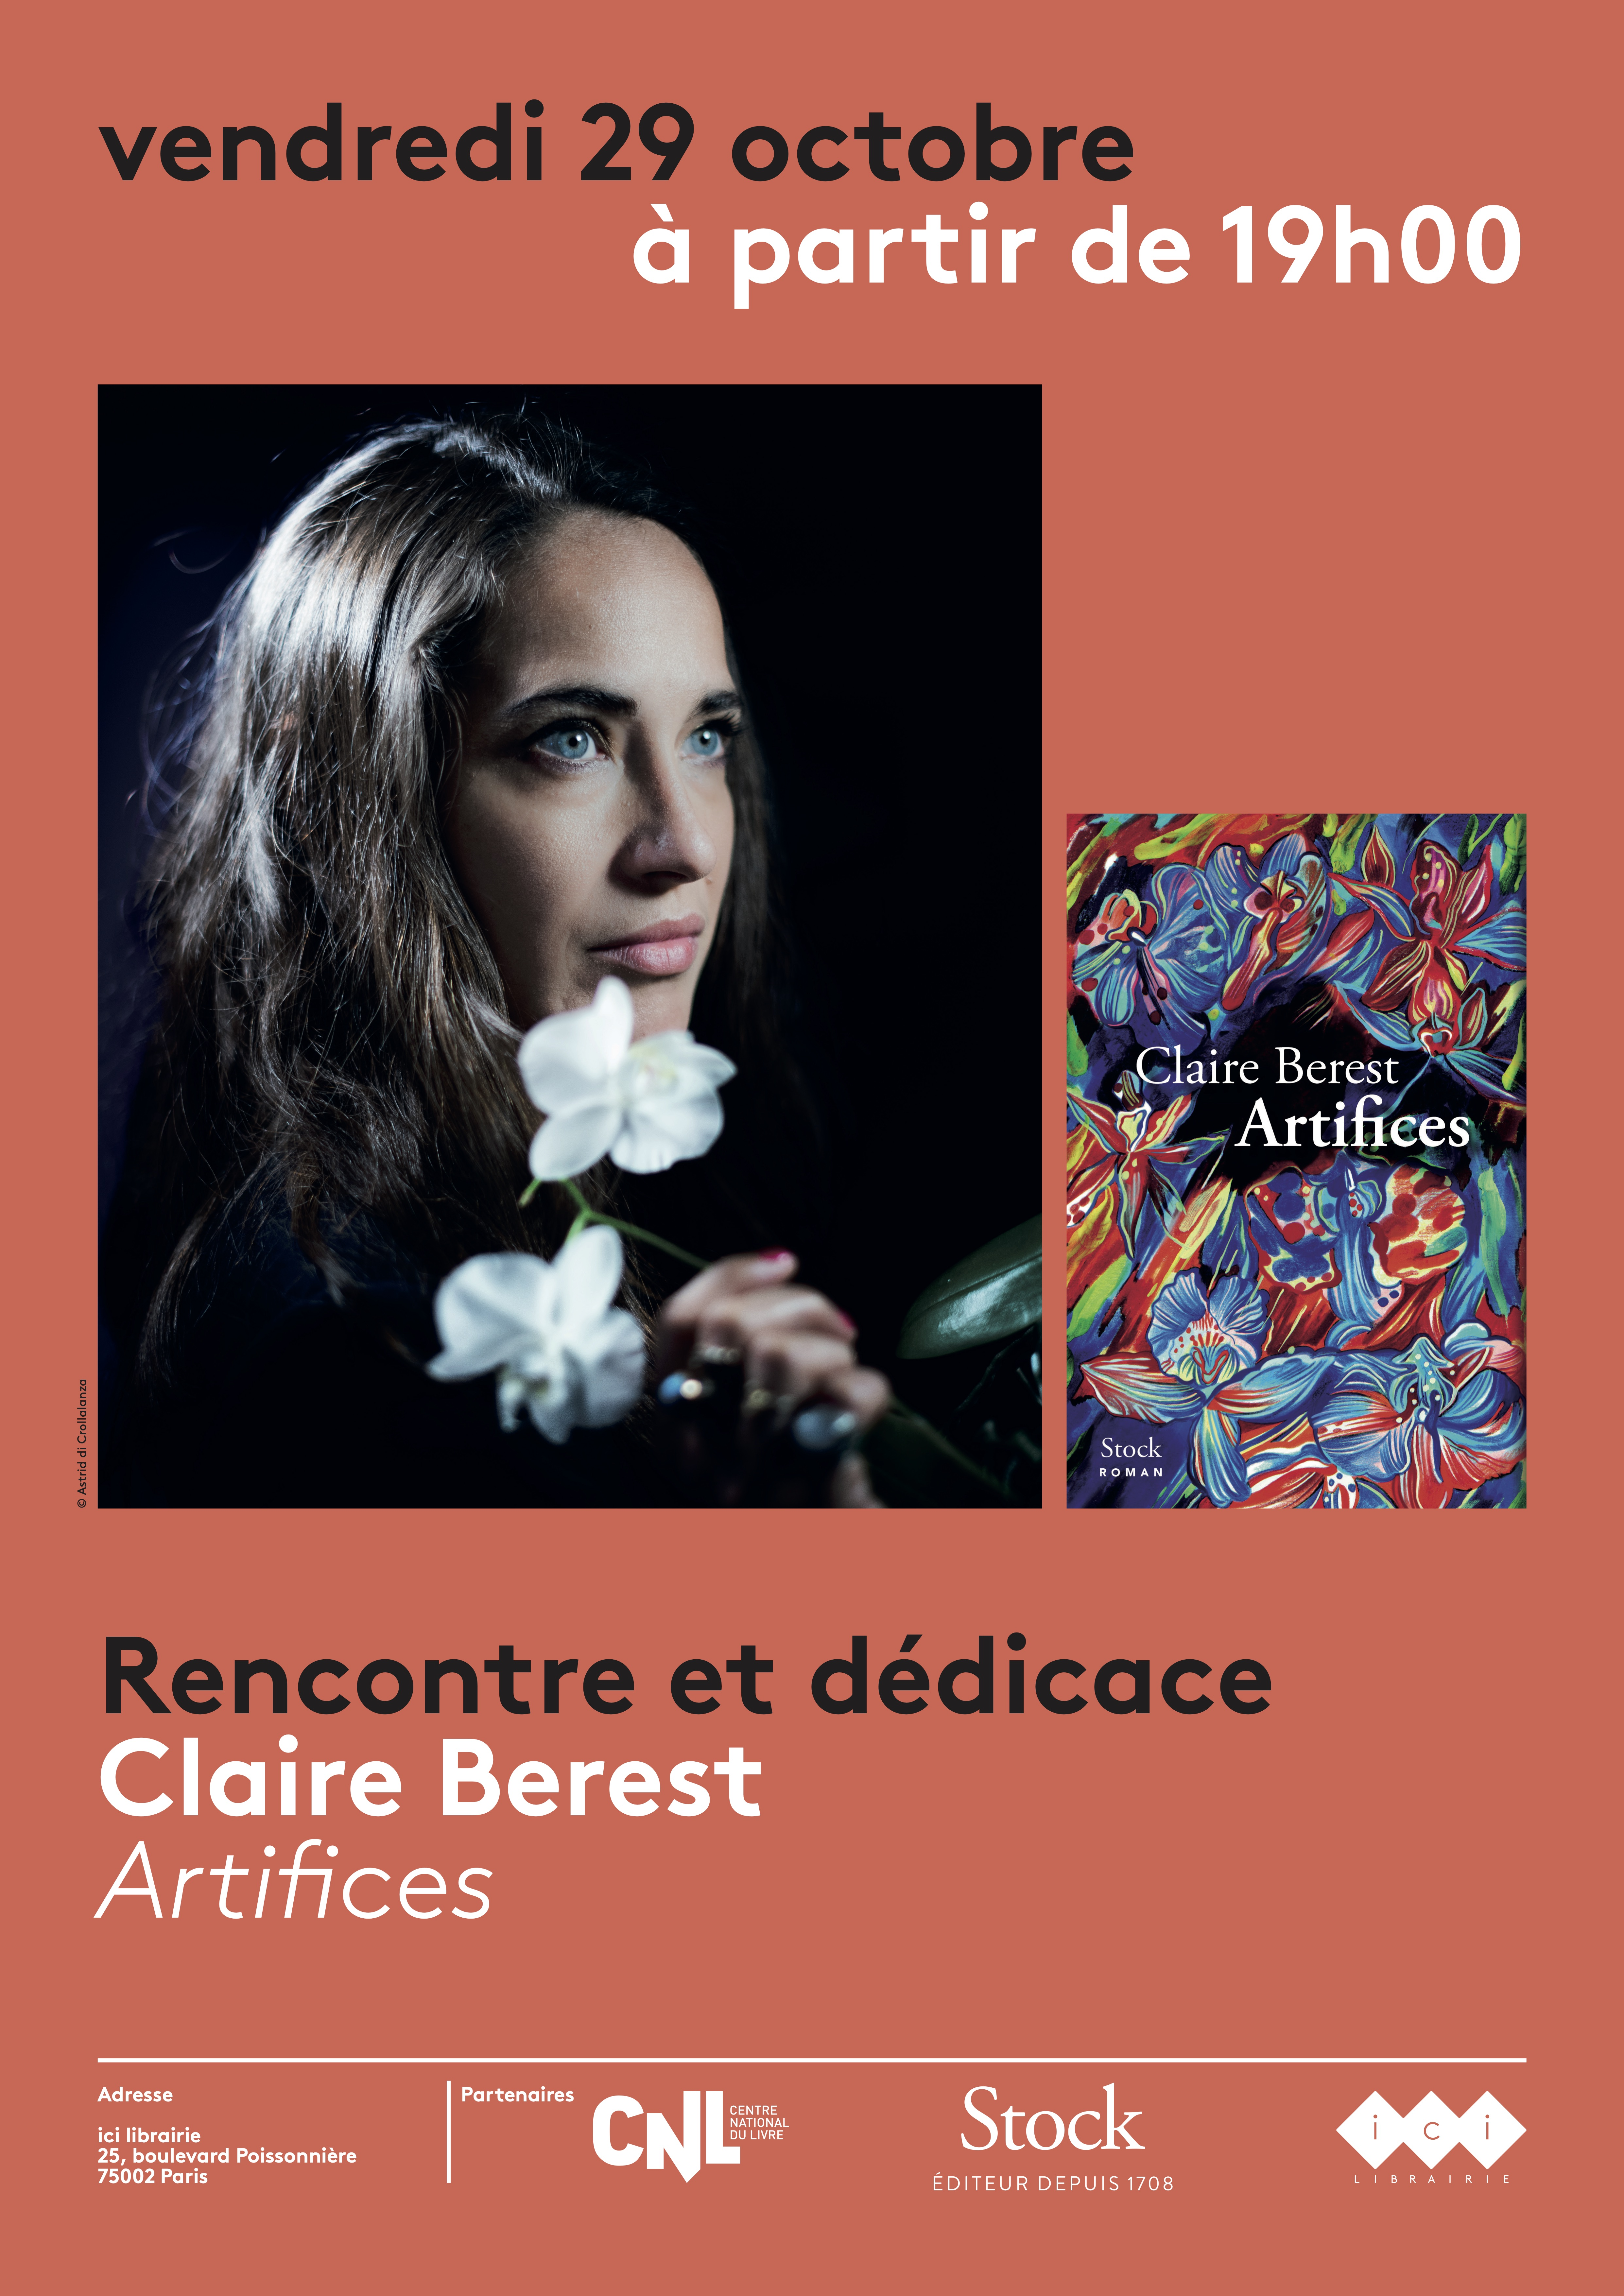 AFFICHE Stock Claire Berest A0_V2.jpg